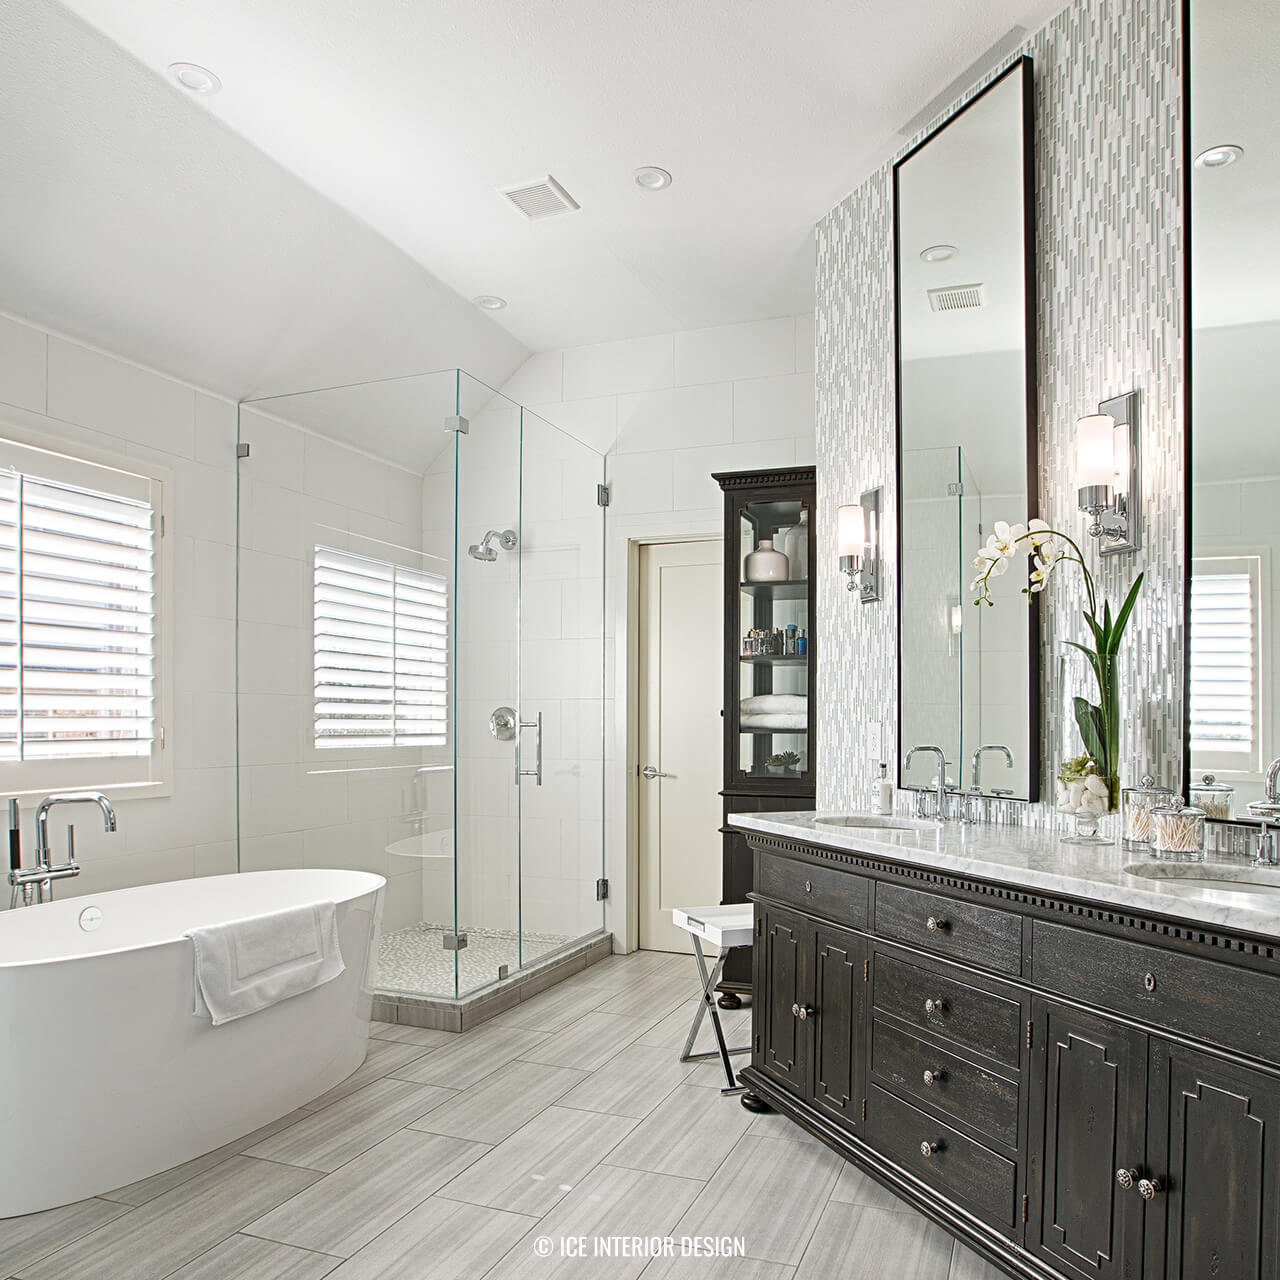 A Contemporary Master Bath Remodel via Interior Design pre-planning ...